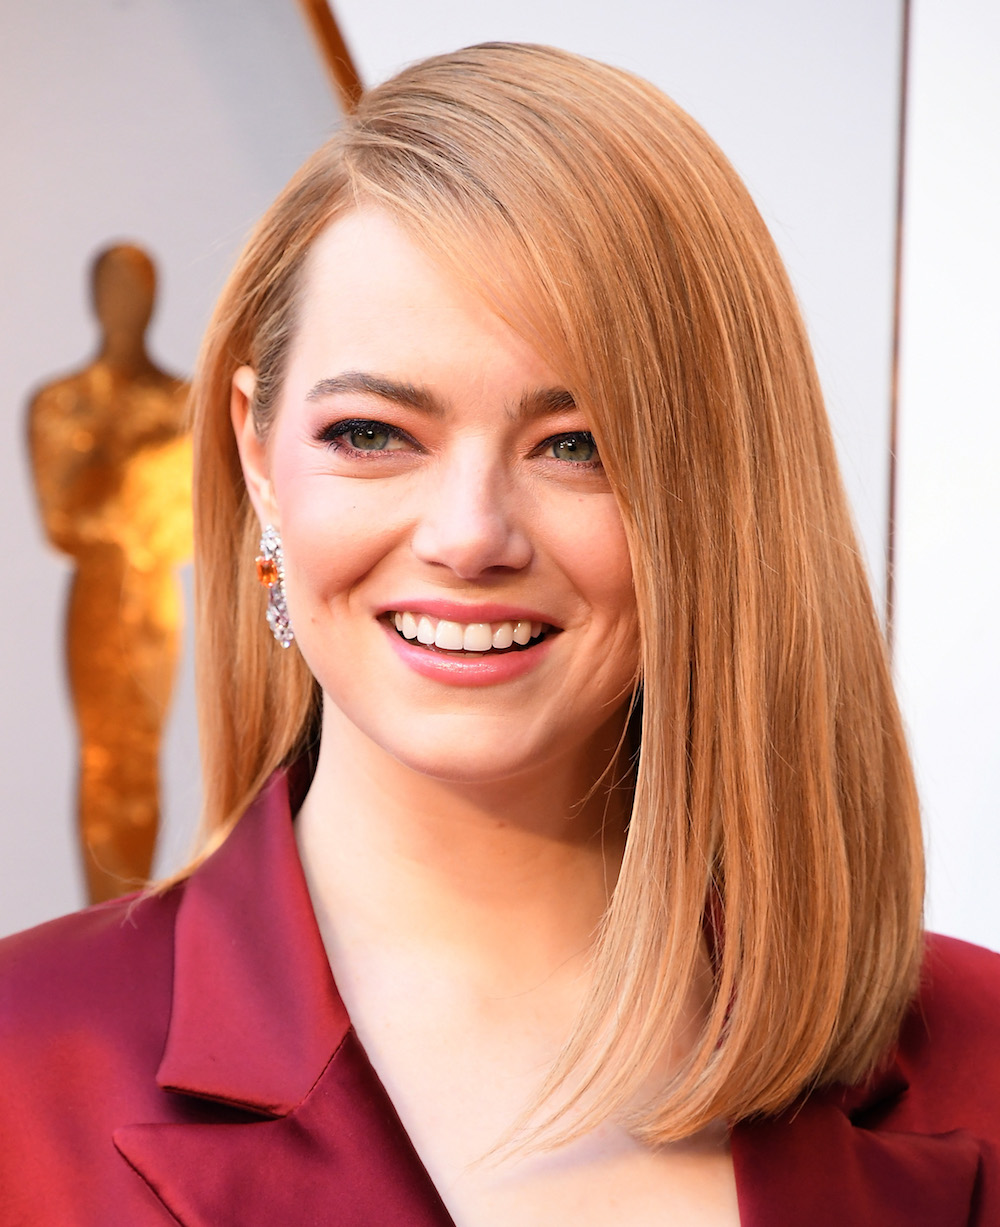 Emma Stone wore this $9 beauty product at the 2018 Oscars, and it's Queen Elizabeth-approved